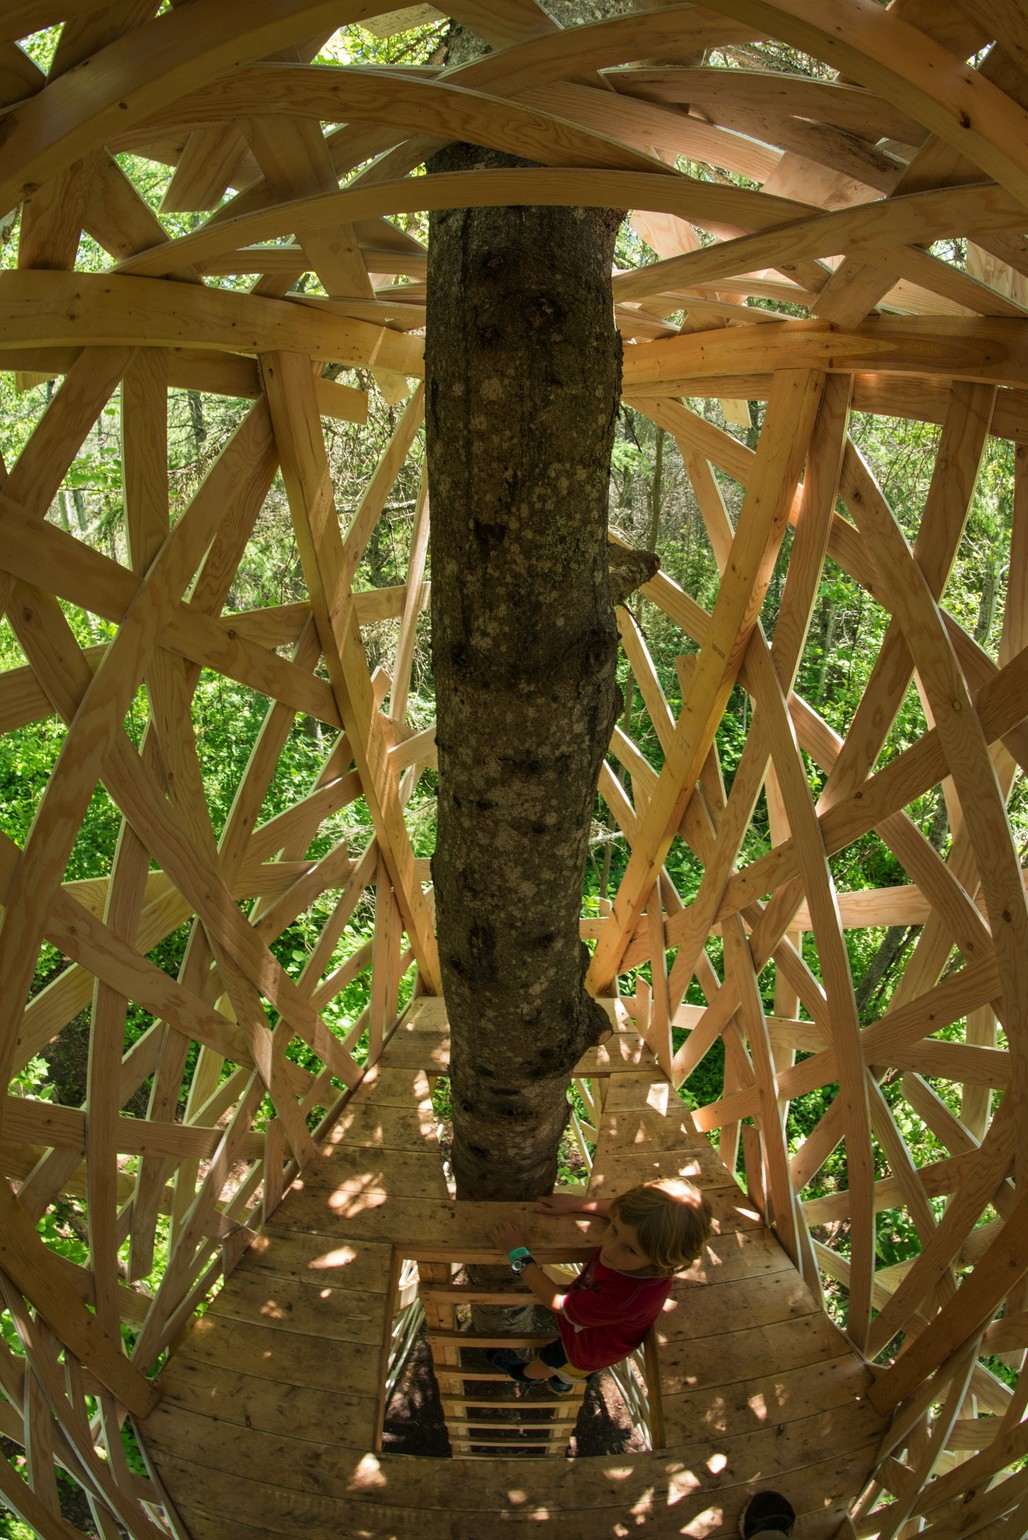 La Chrysalide by landscape architects Gabriel Lacombe & Virginie Roy-Mazoyer, Vancouver (British Columbia) & Montreal (Quebec) Canada. Photo credit: Martin Bond